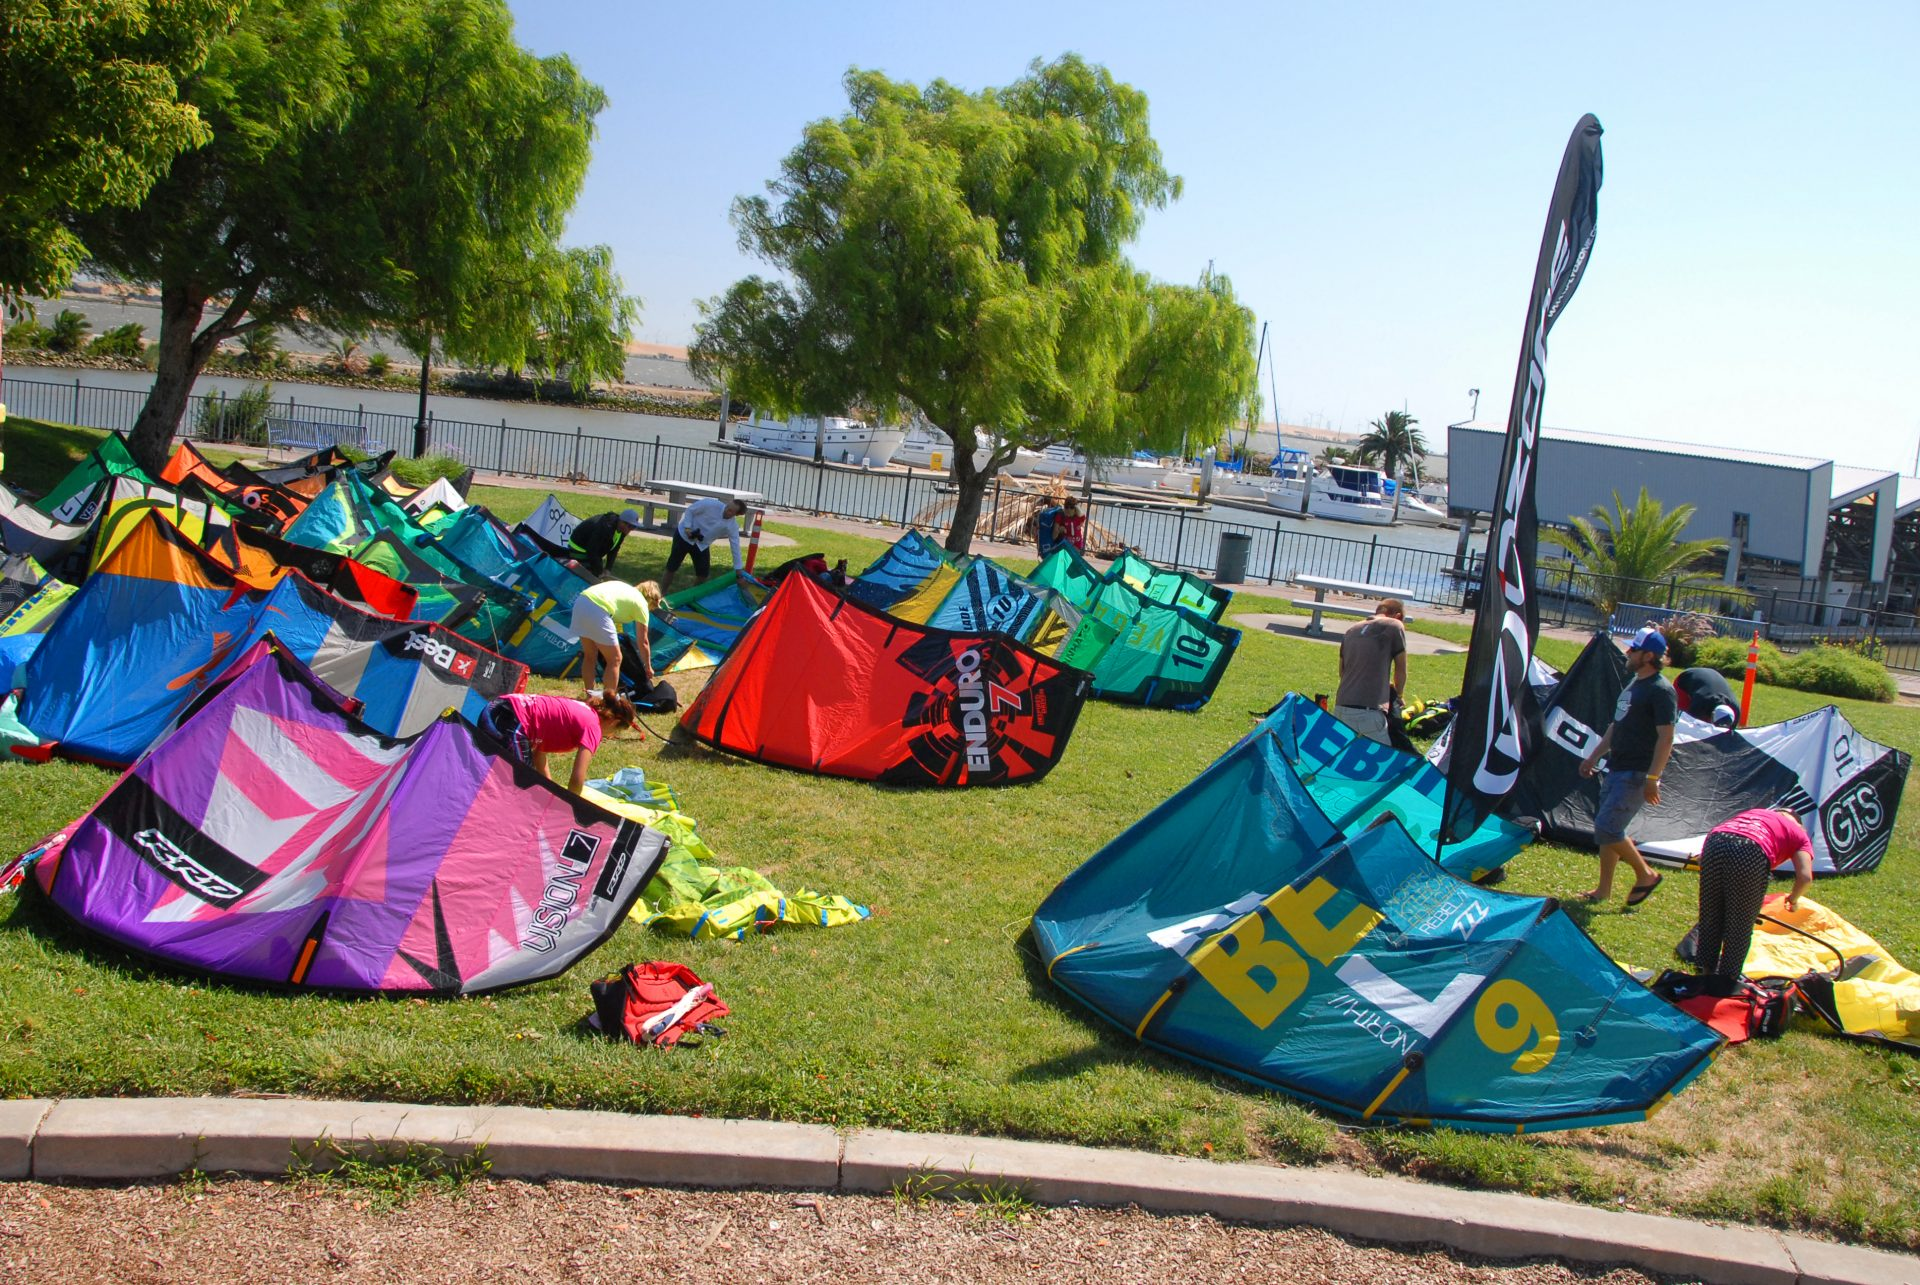 colorful kites for kiteboarding arrayed on grass